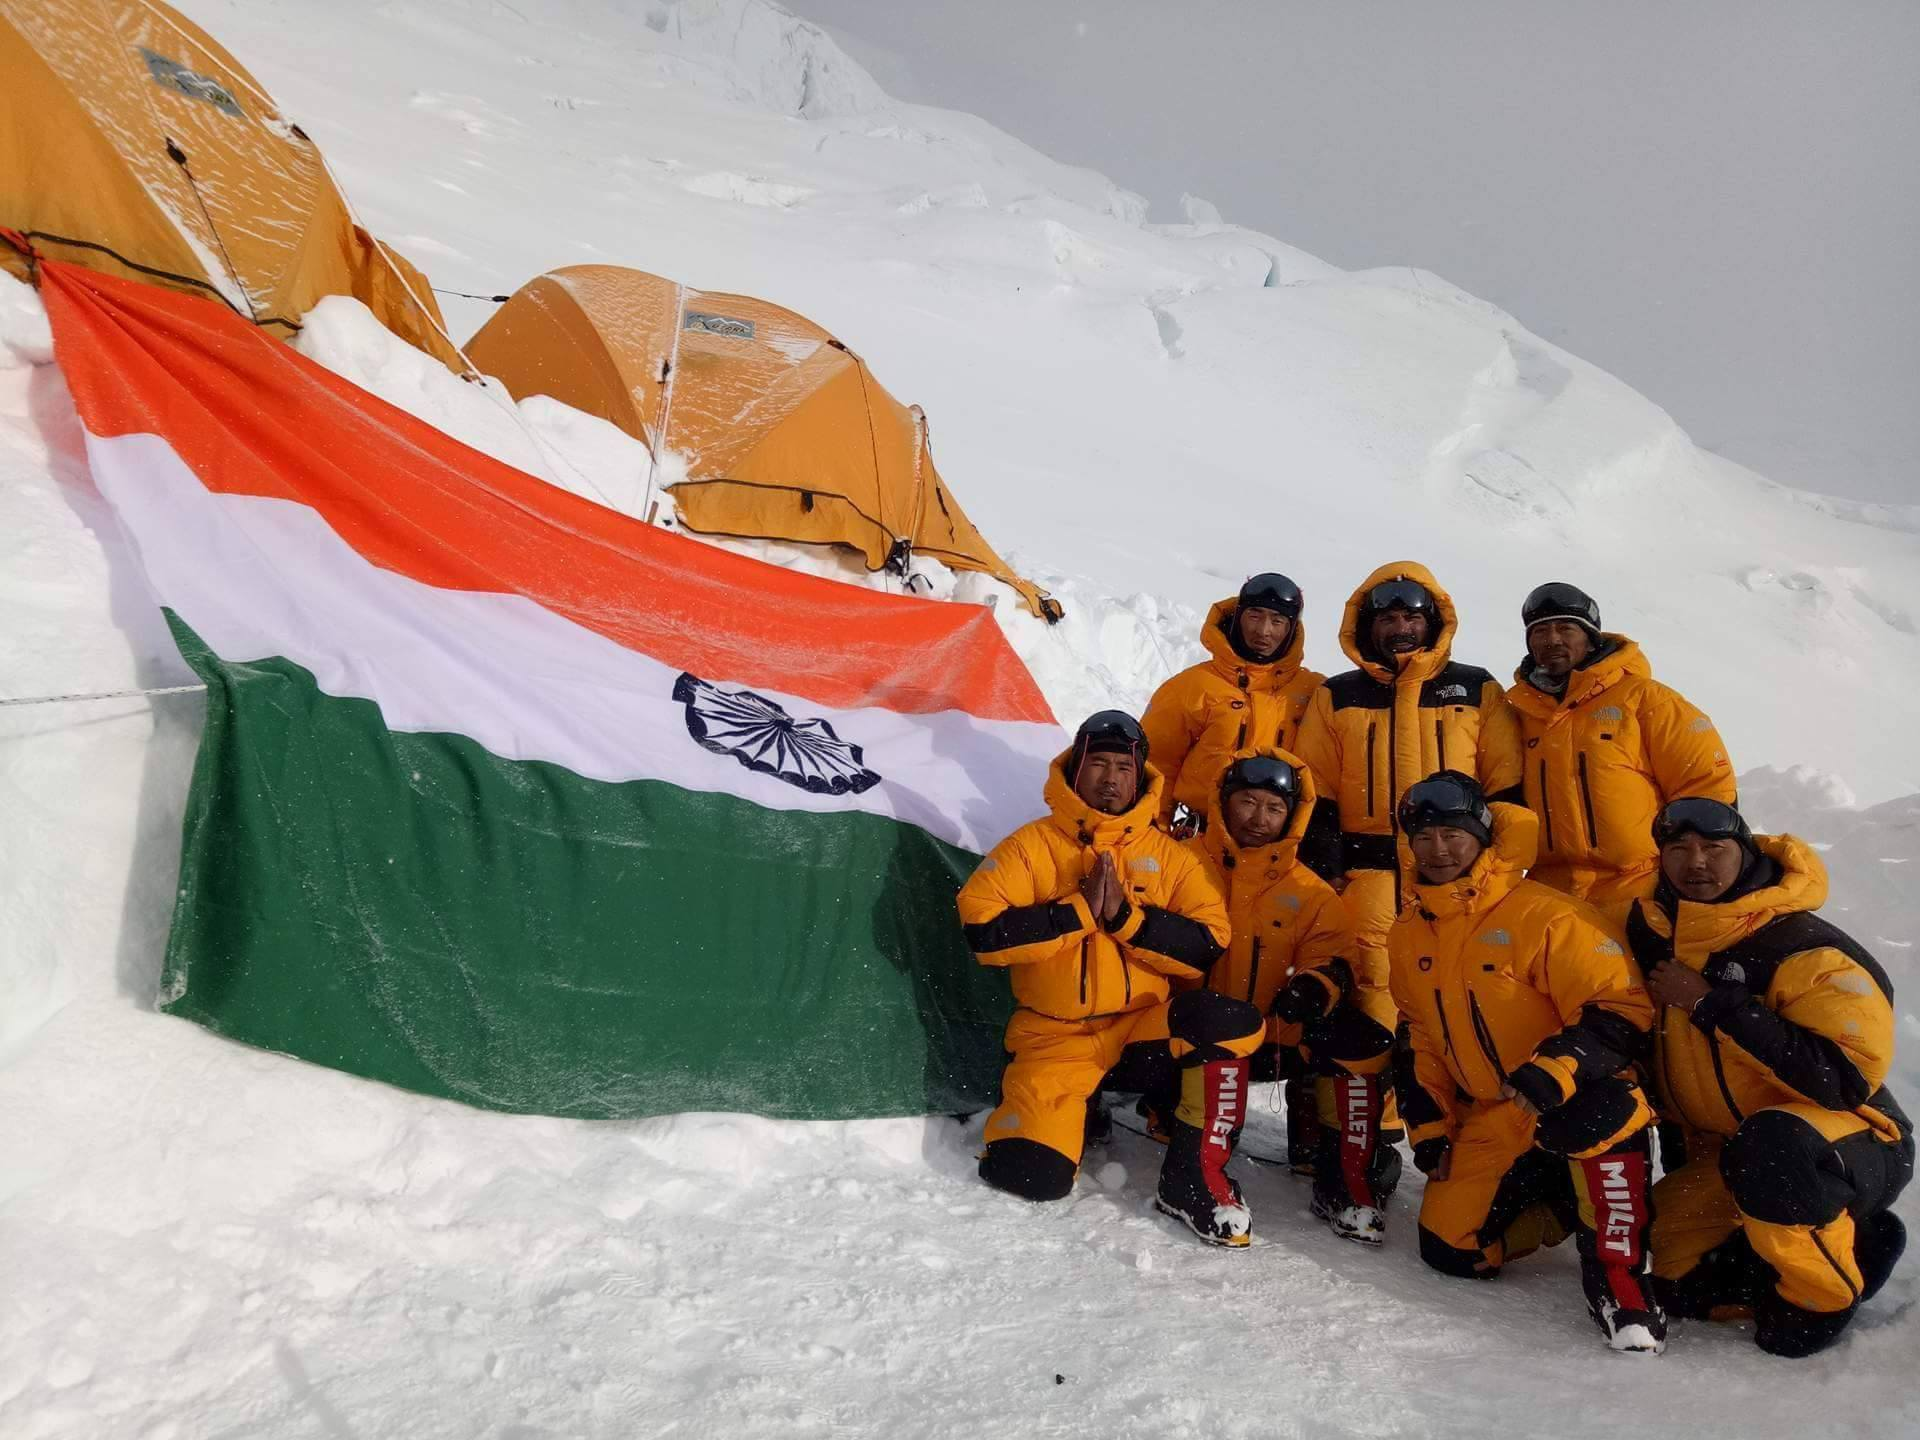 hindi essay on mount everest in hindi From an unknown soviet attempt to a bizarre solo attempt, here are four strange stories about mount everest, the highest mountain in the world.